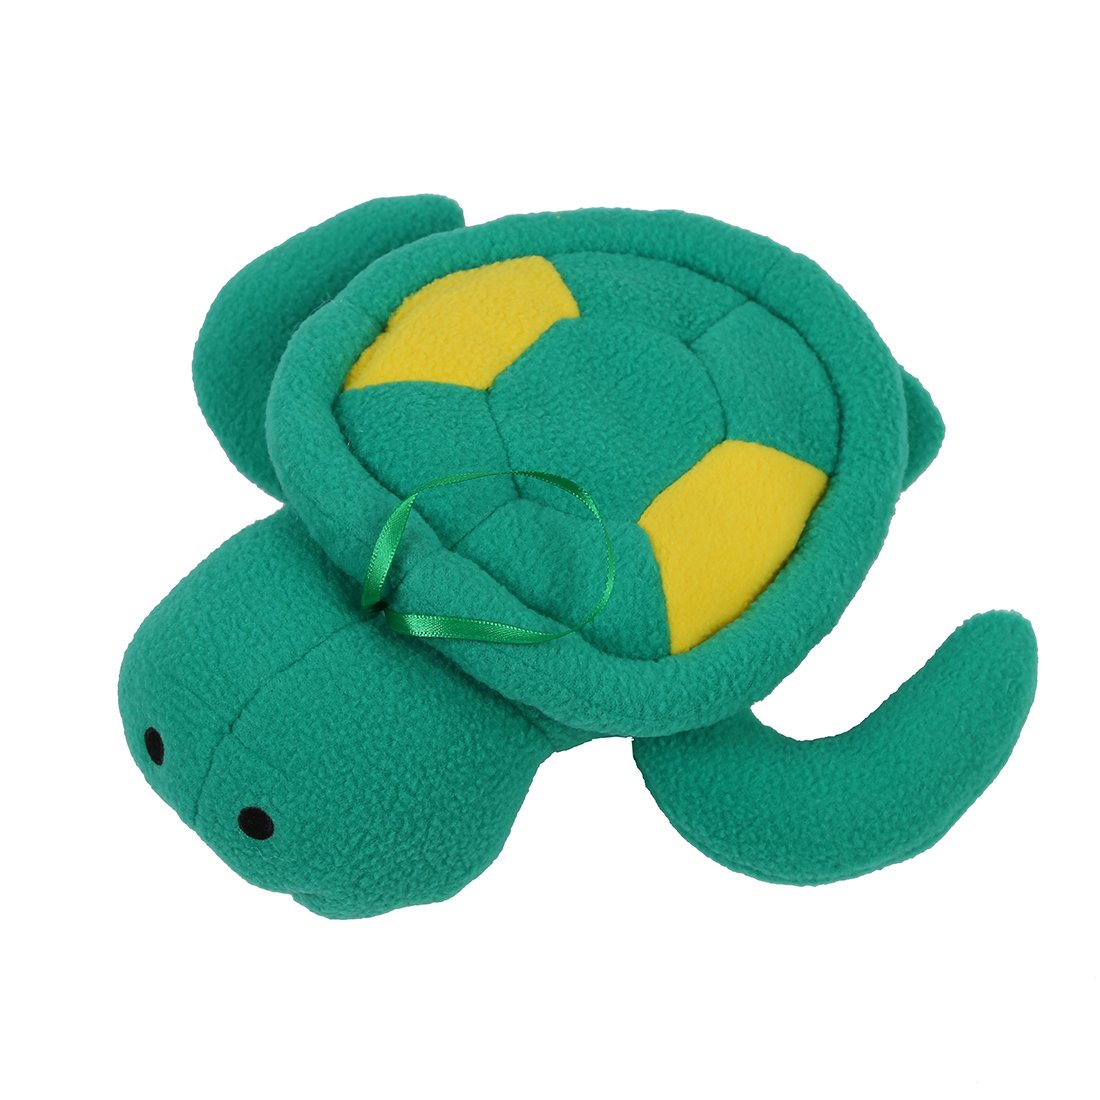 SODIAL(R) Baby Animal Holder Storage Bag Pouch Cover for Milk Bottle(Green Turtle)